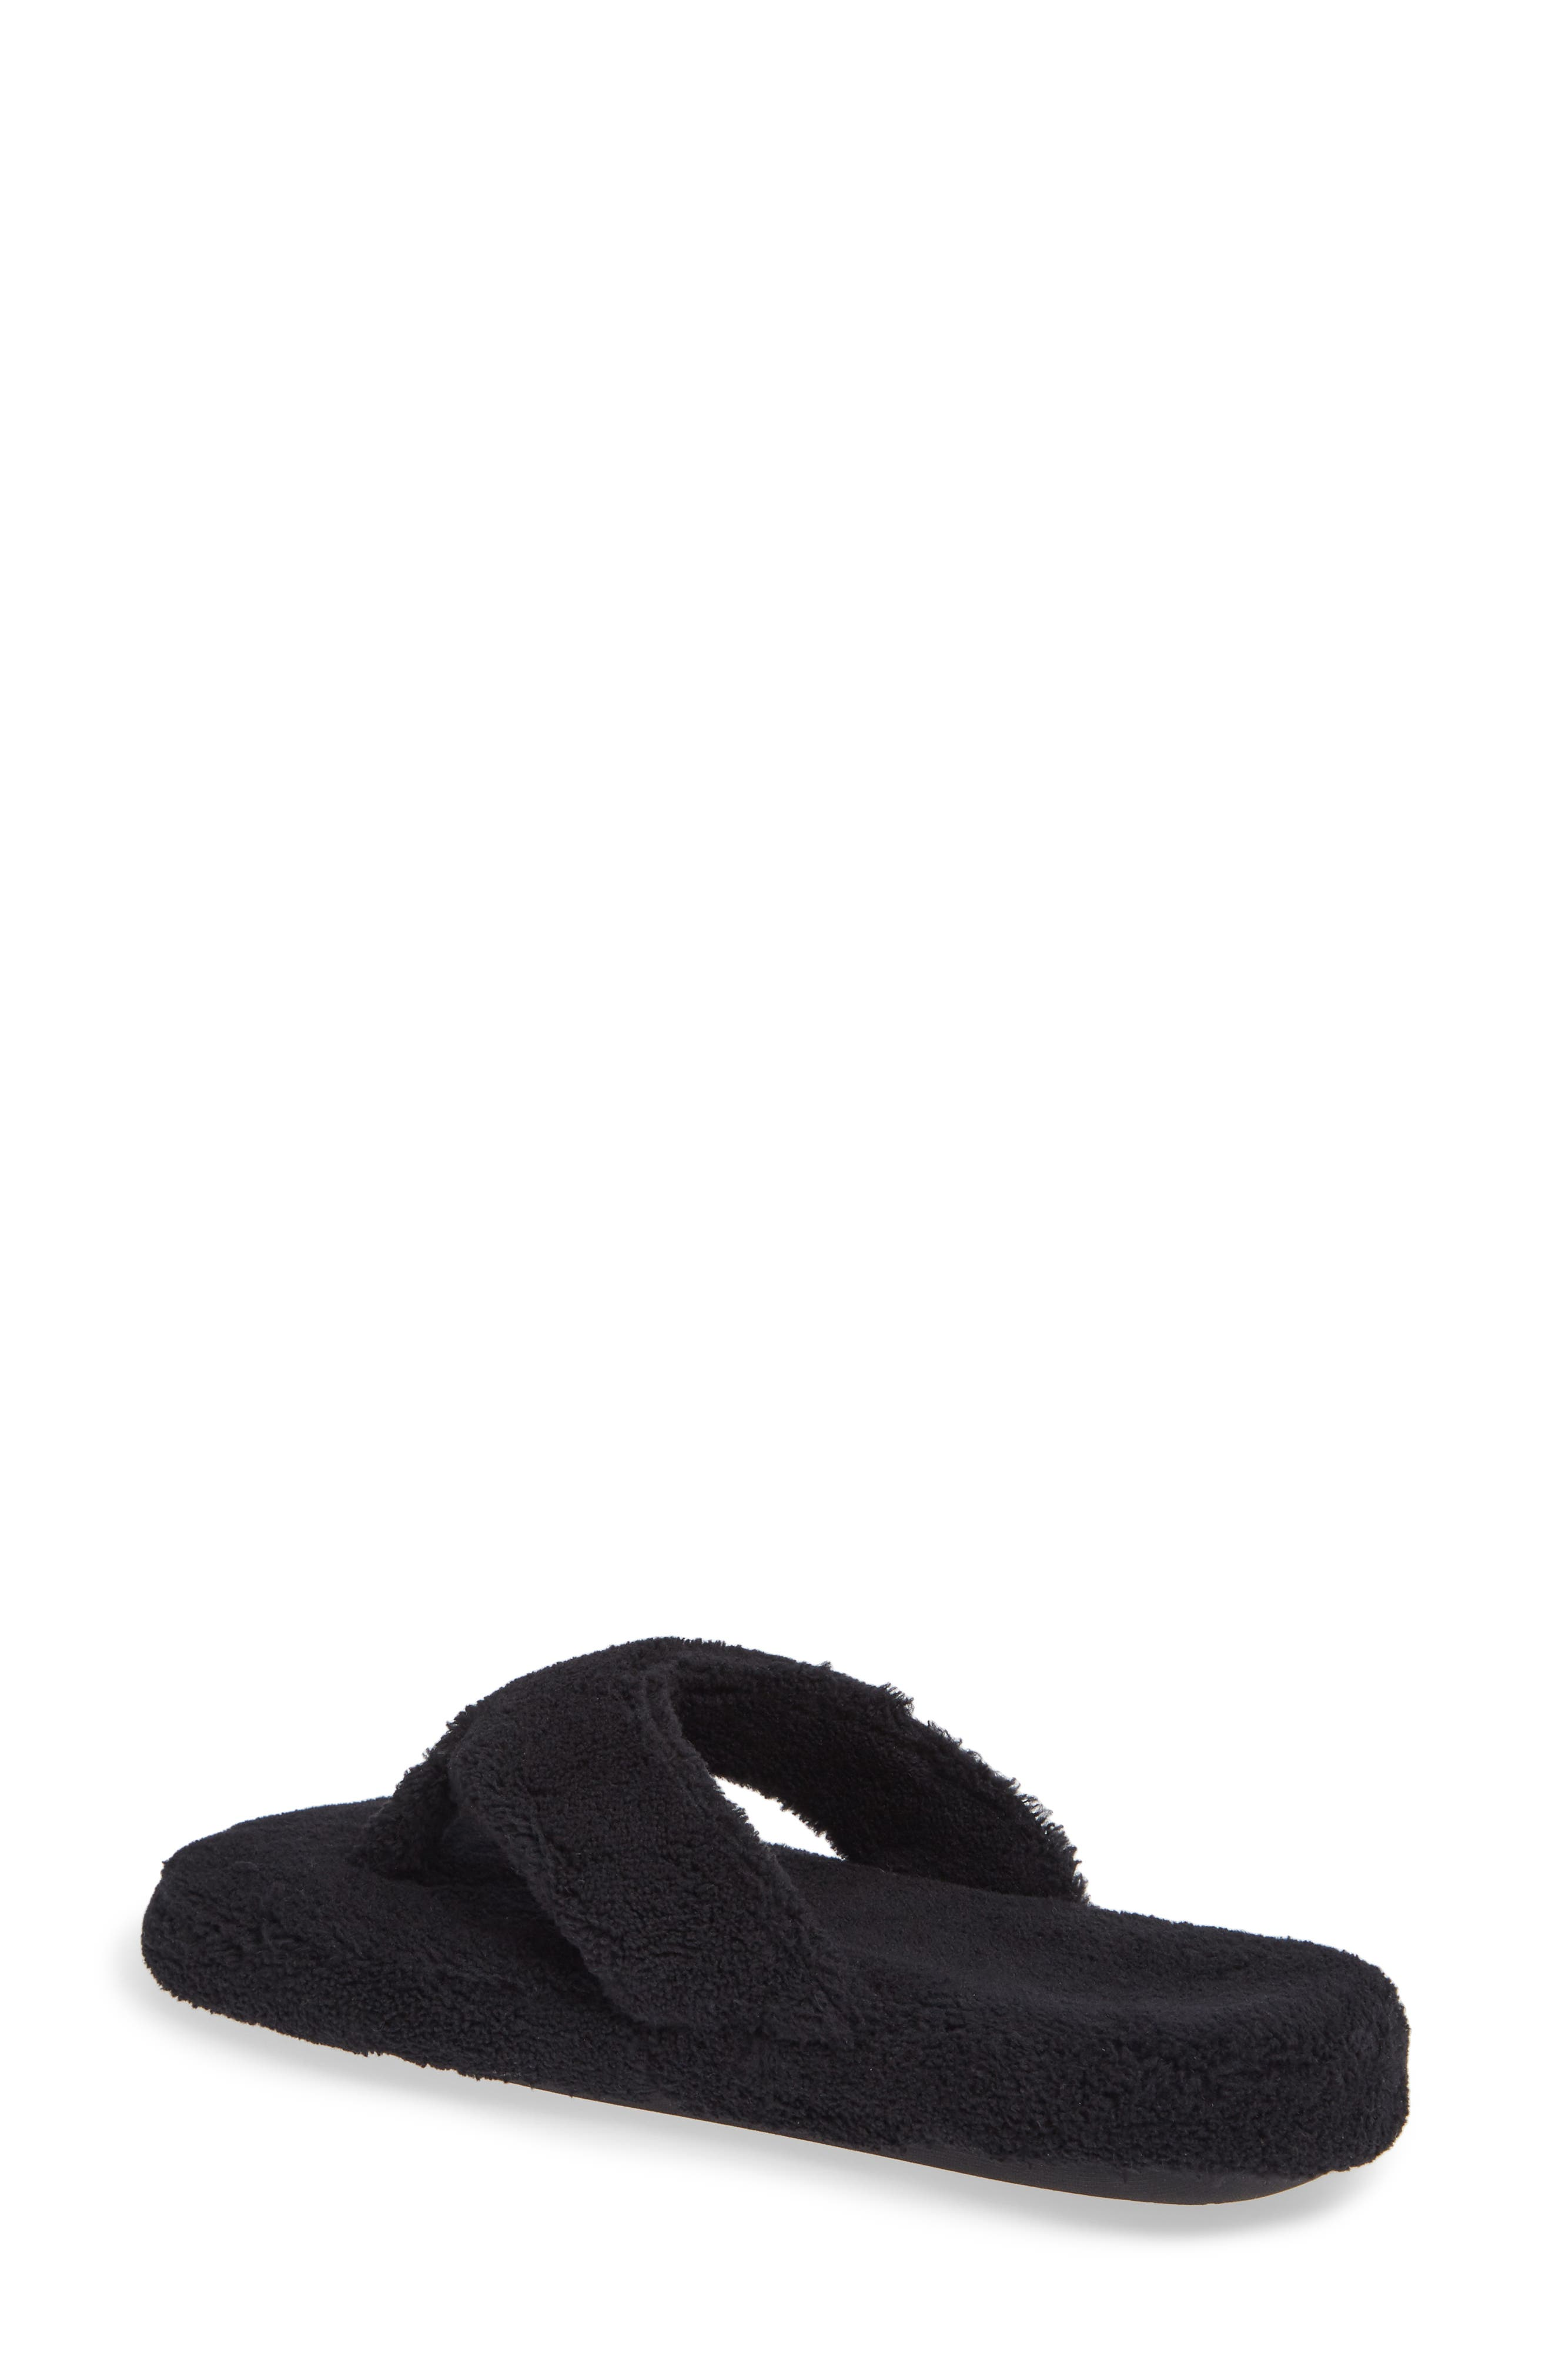 MINNETONKA, Olivia Spa Flip Flop, Alternate thumbnail 2, color, BLACK FABRIC